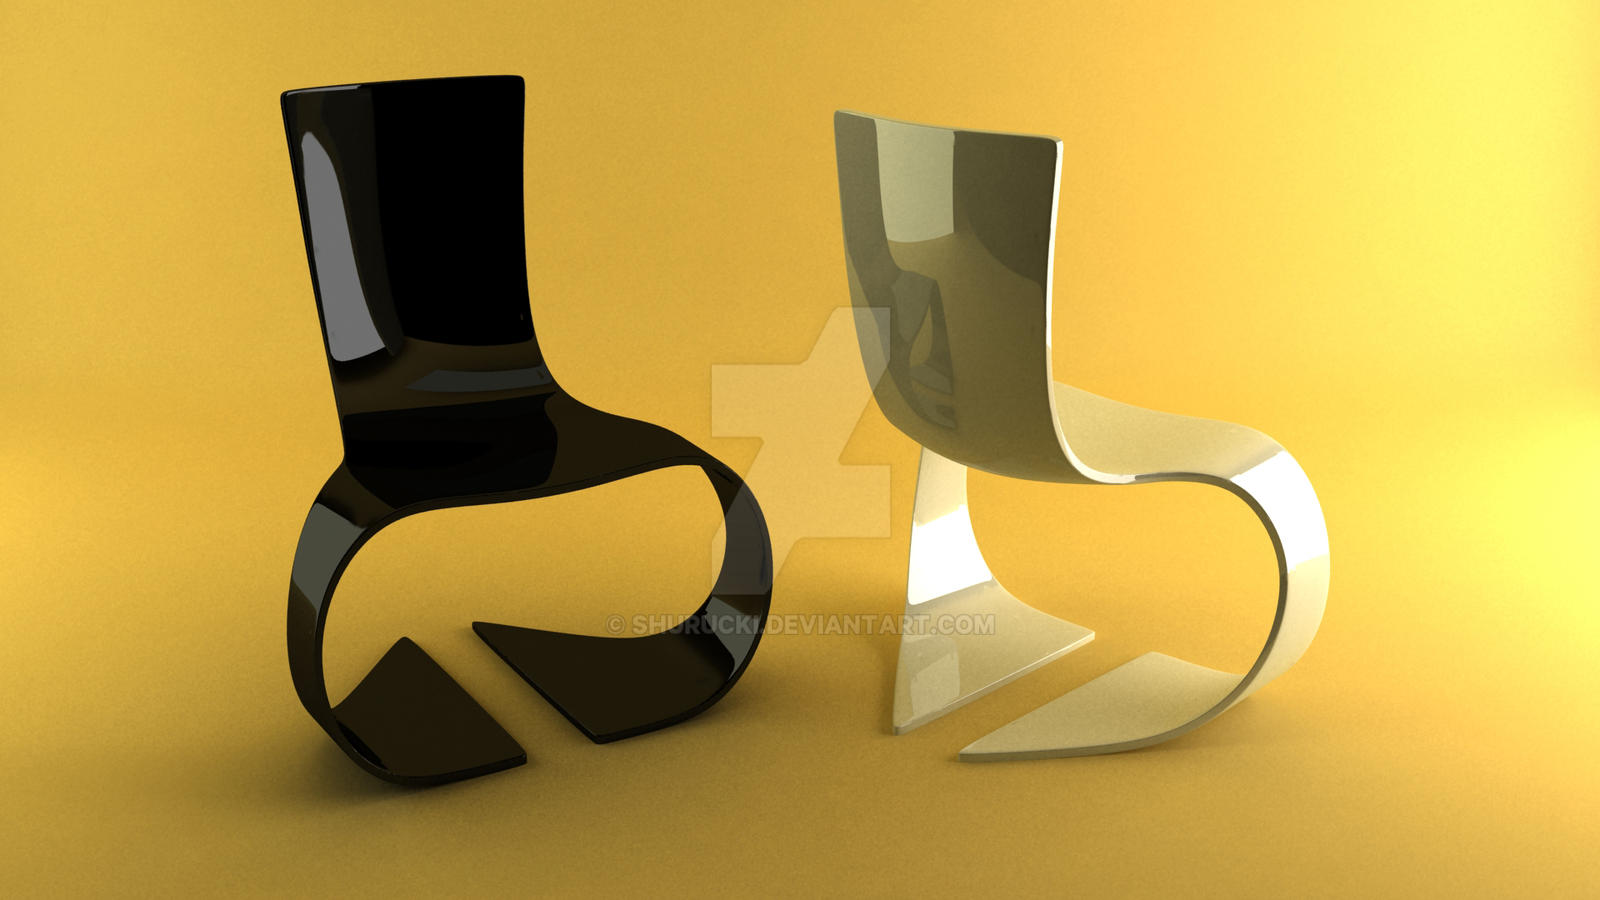 Abstract Chairs By Shurucki Abstract Chairs By Shurucki